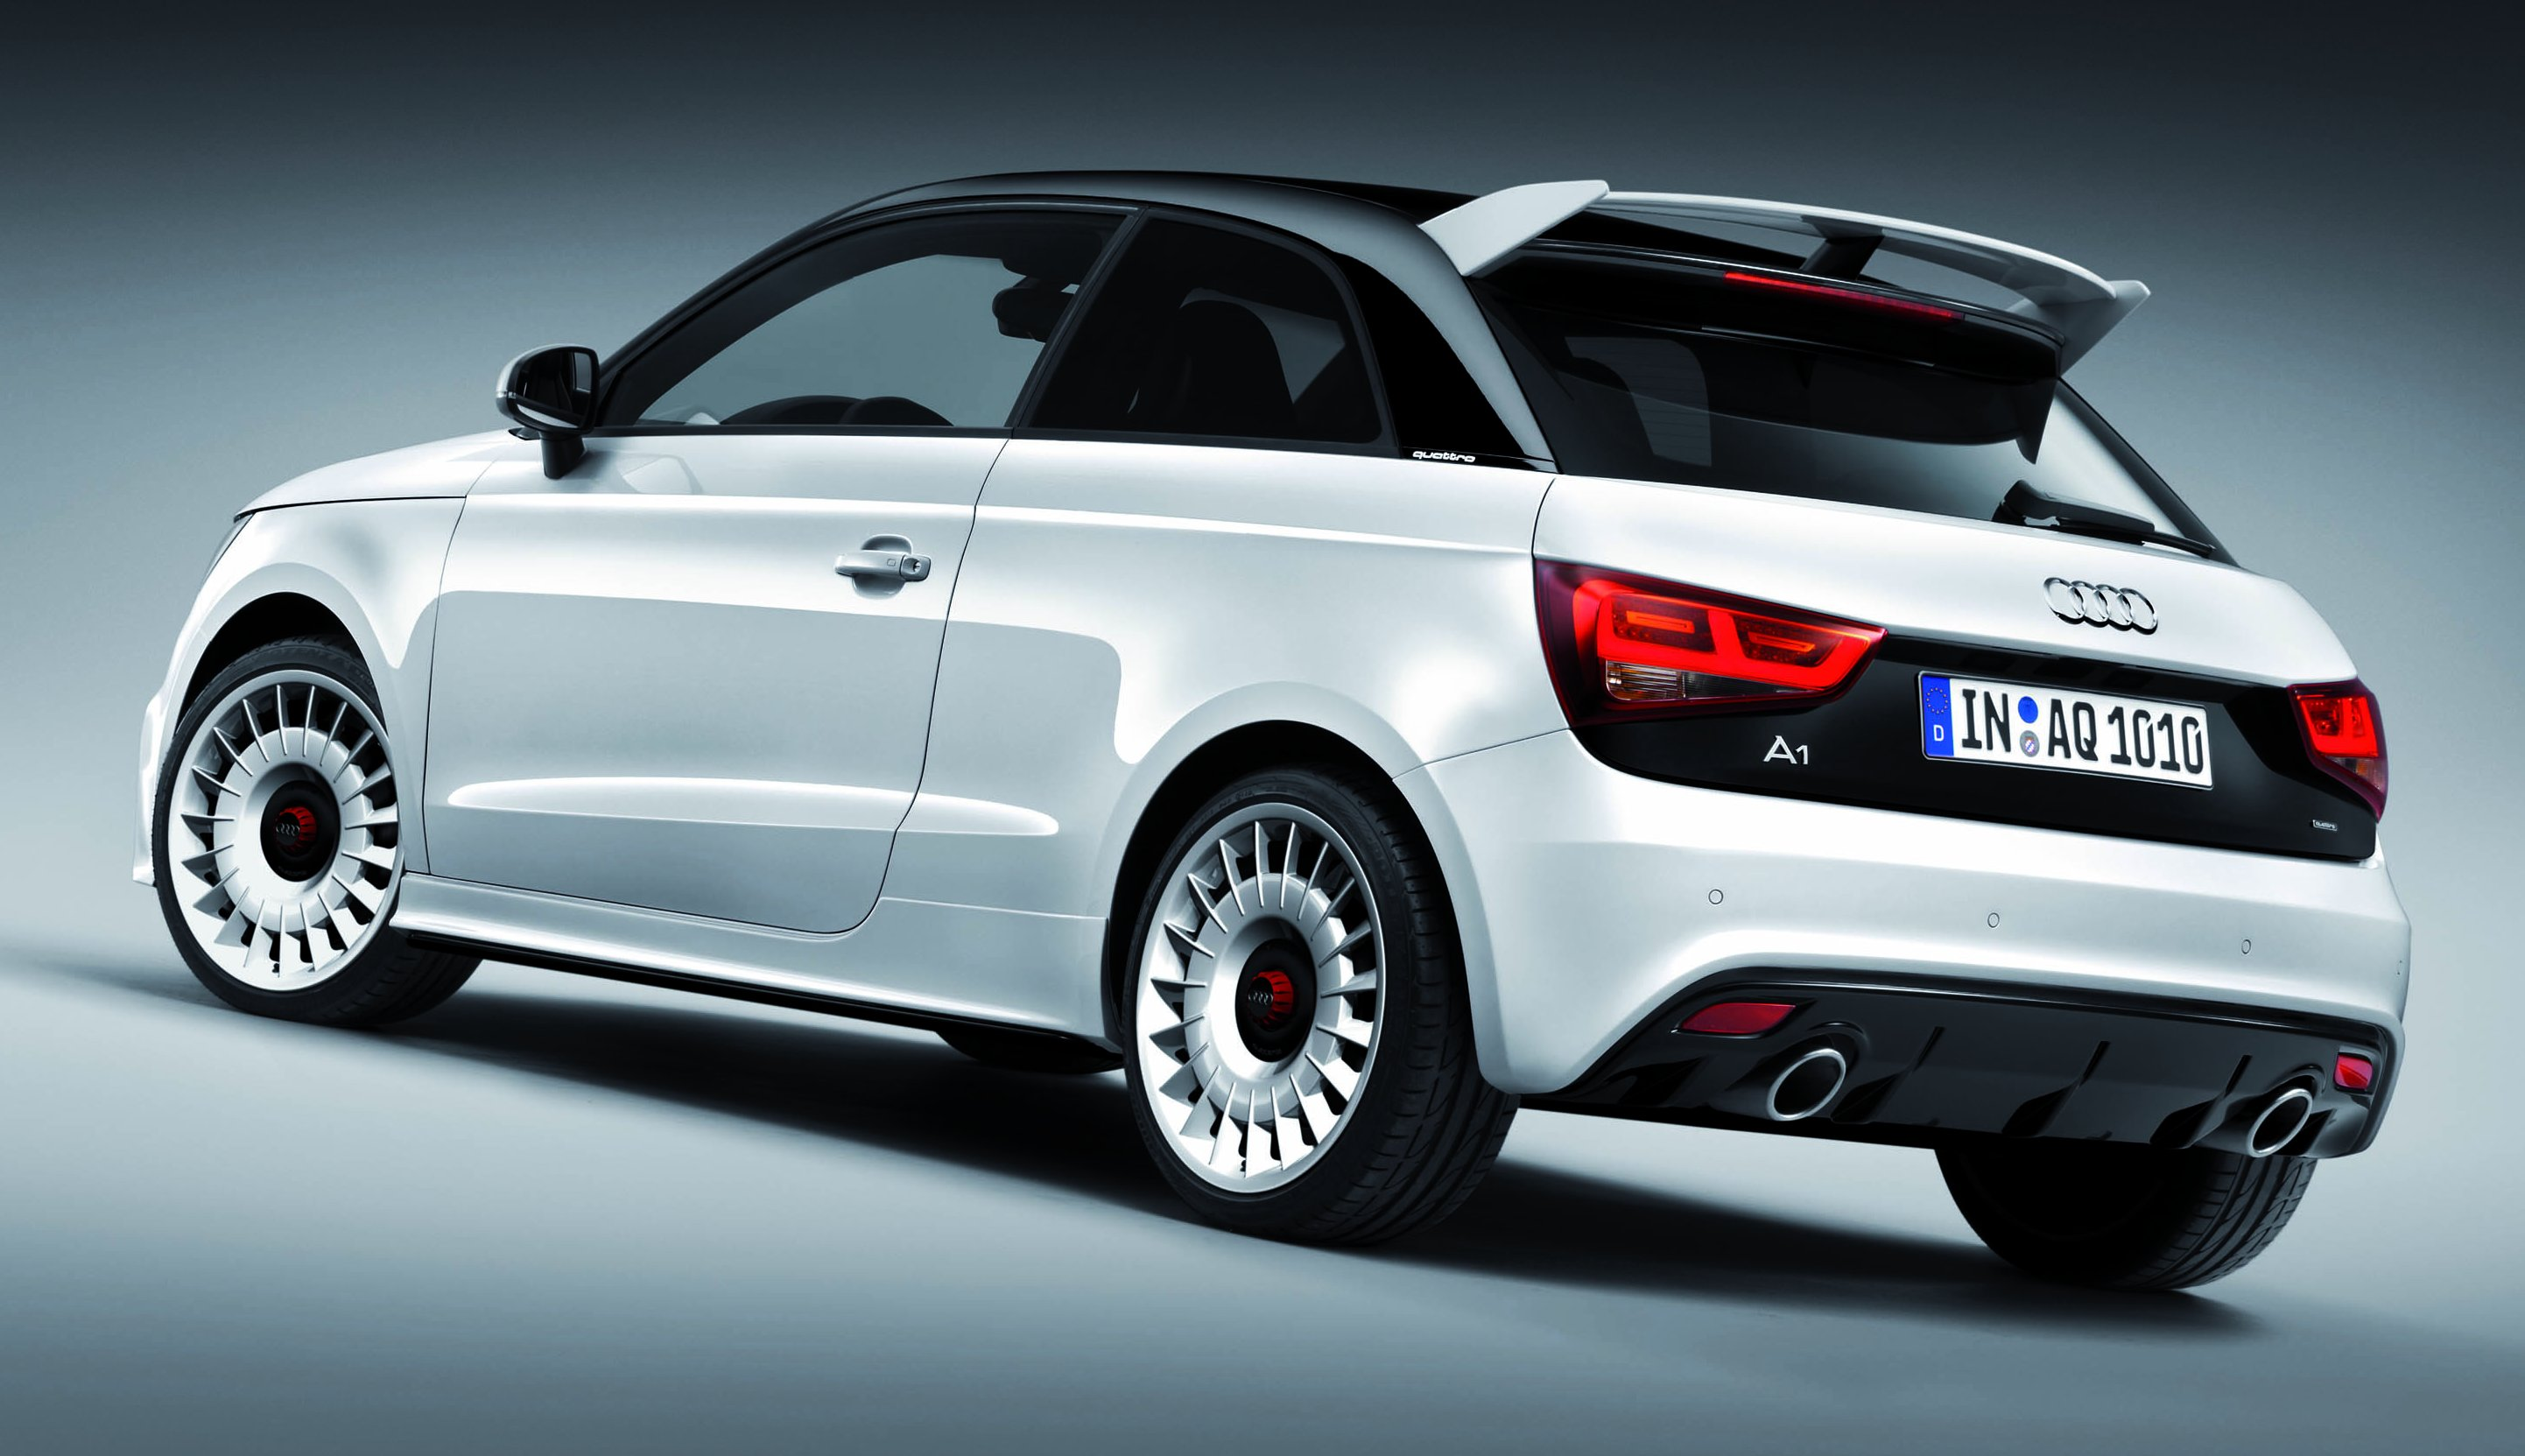 Audi A1 Quattro 256 Hp And 350 Nm Only 333 Units Paul